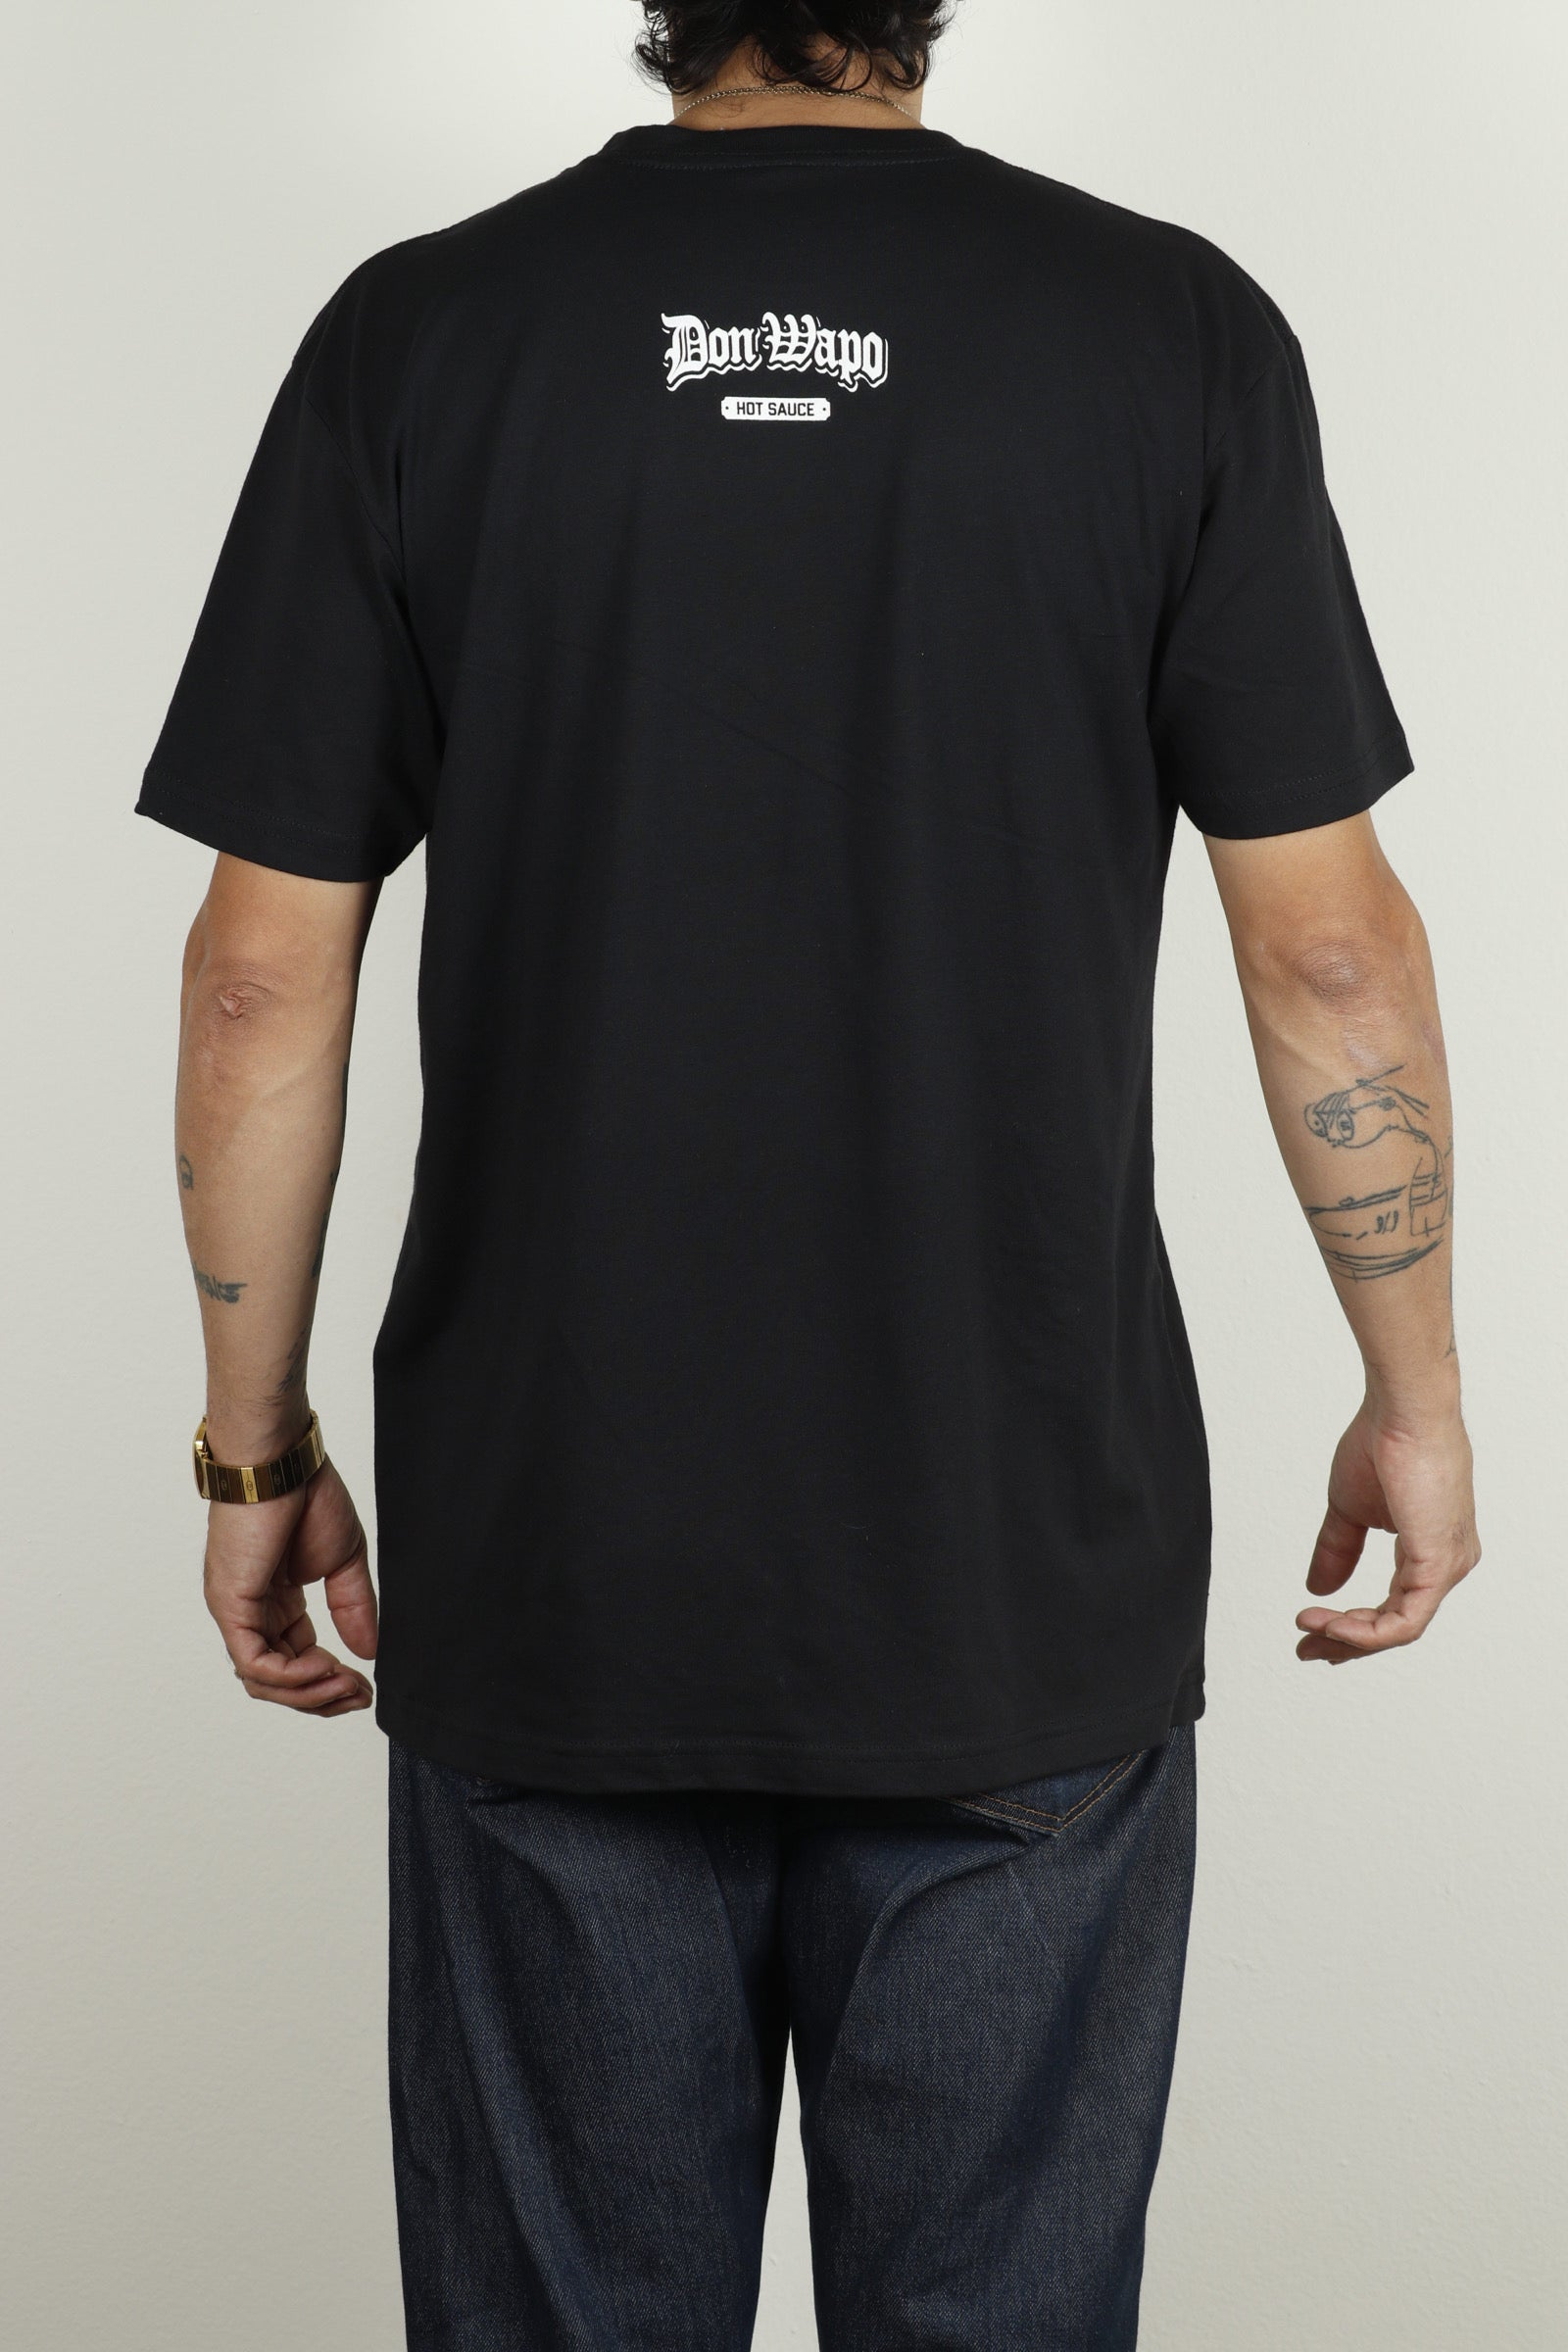 Mens OG Don Wapo Front Logo Tee Black